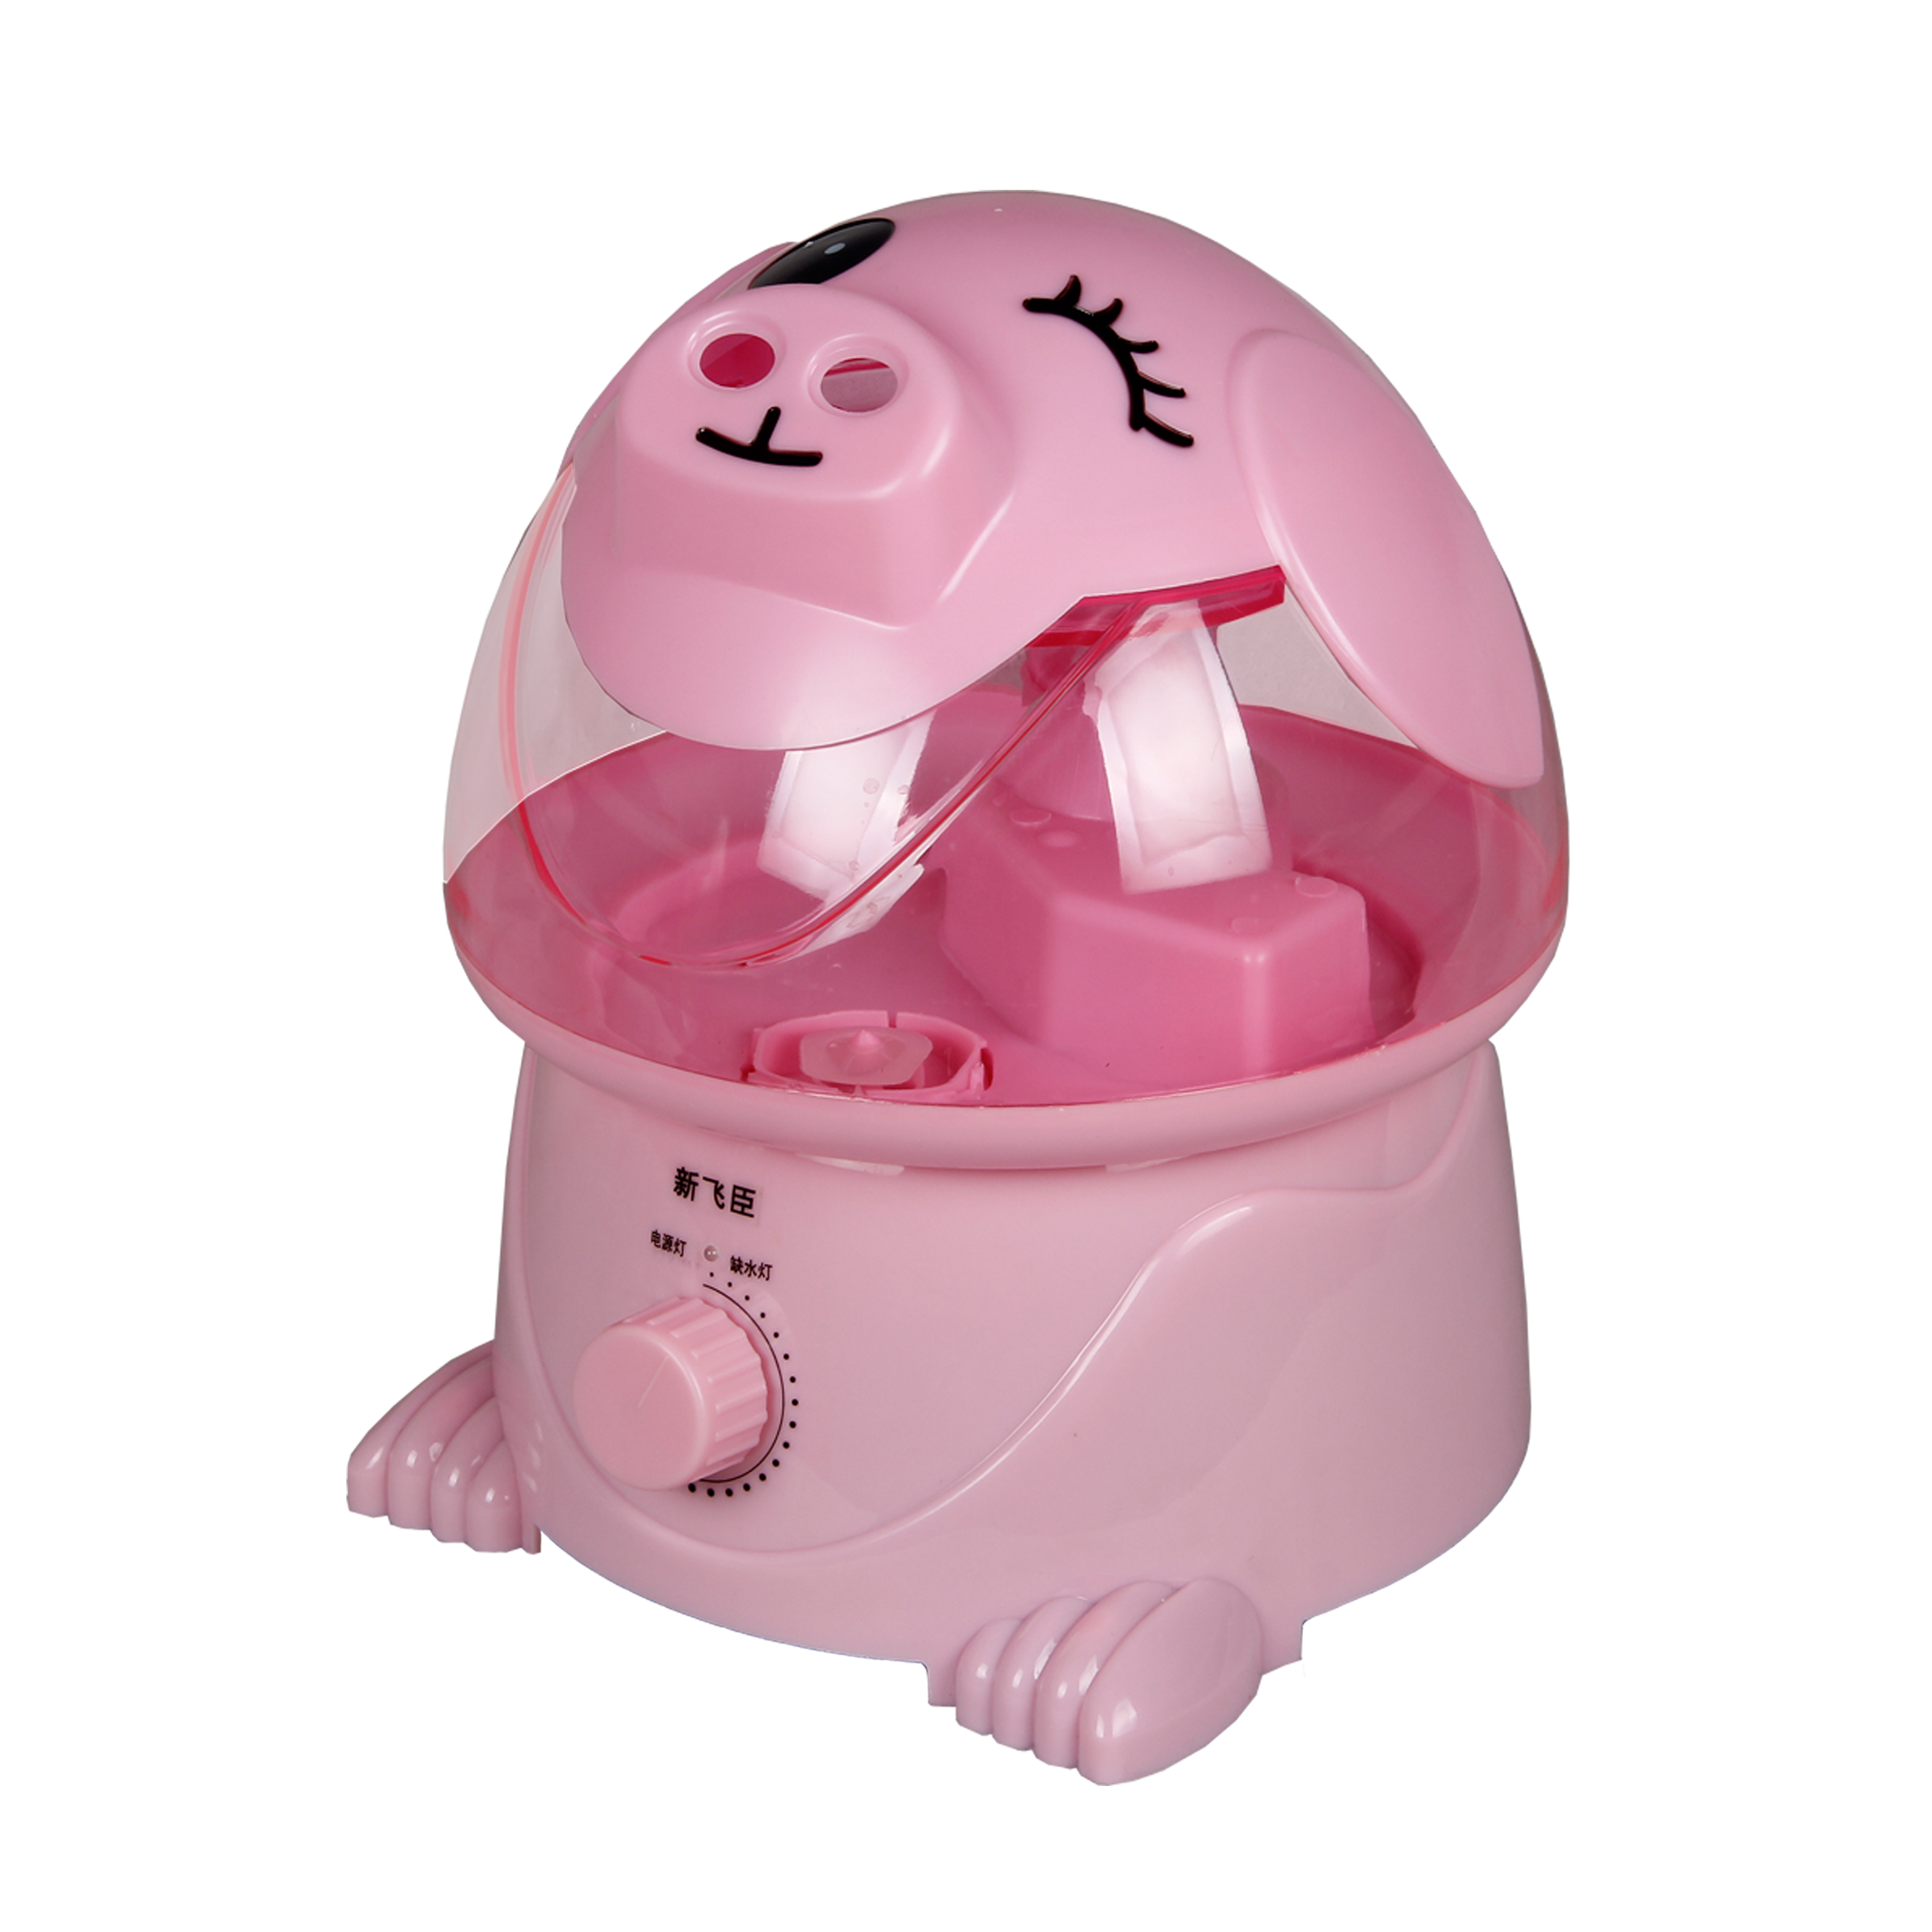 Cartoon Humidifier Mute Home Office Bedroom Large Capacity Baby Pregnant Air Purification Small Mini Aromatherapy Machine 6l floor standing humidifier silent bedroom pregnant women baby purification high capacity aromatherapy timing night light